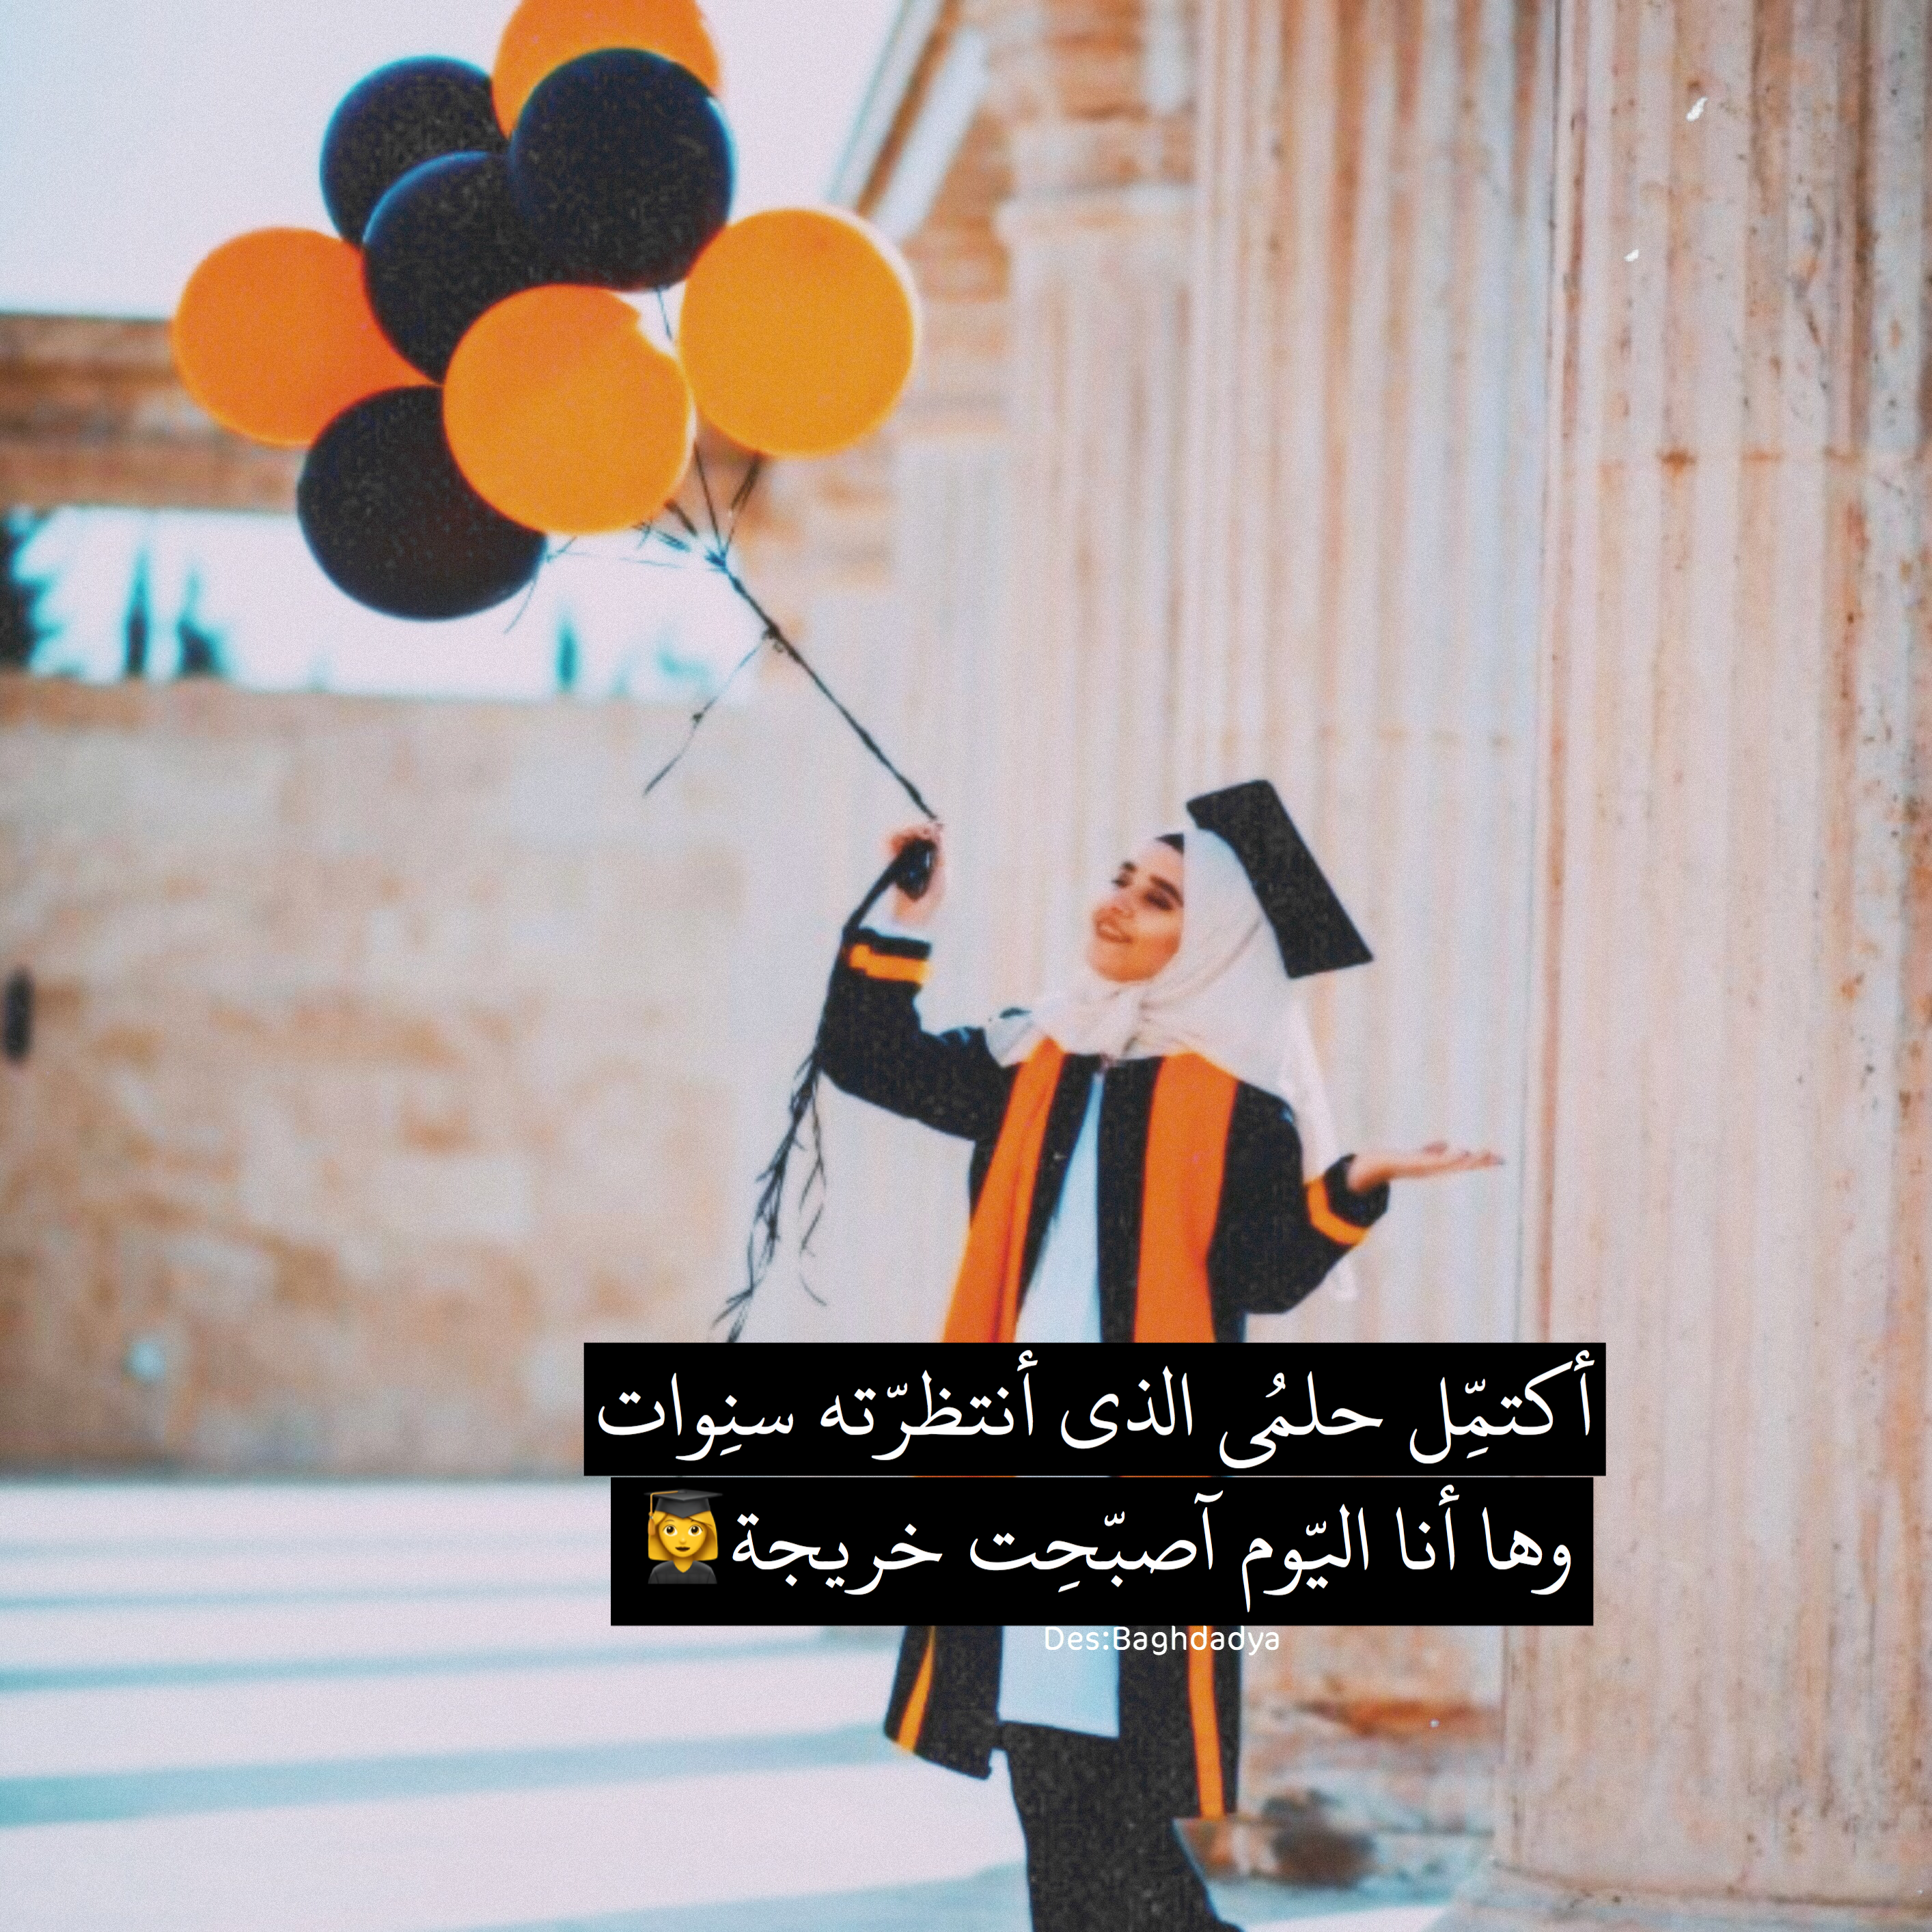 Pin By Mariam Abdullah On عربي Photo Collage Template Graduation Art Graduation Picture Poses